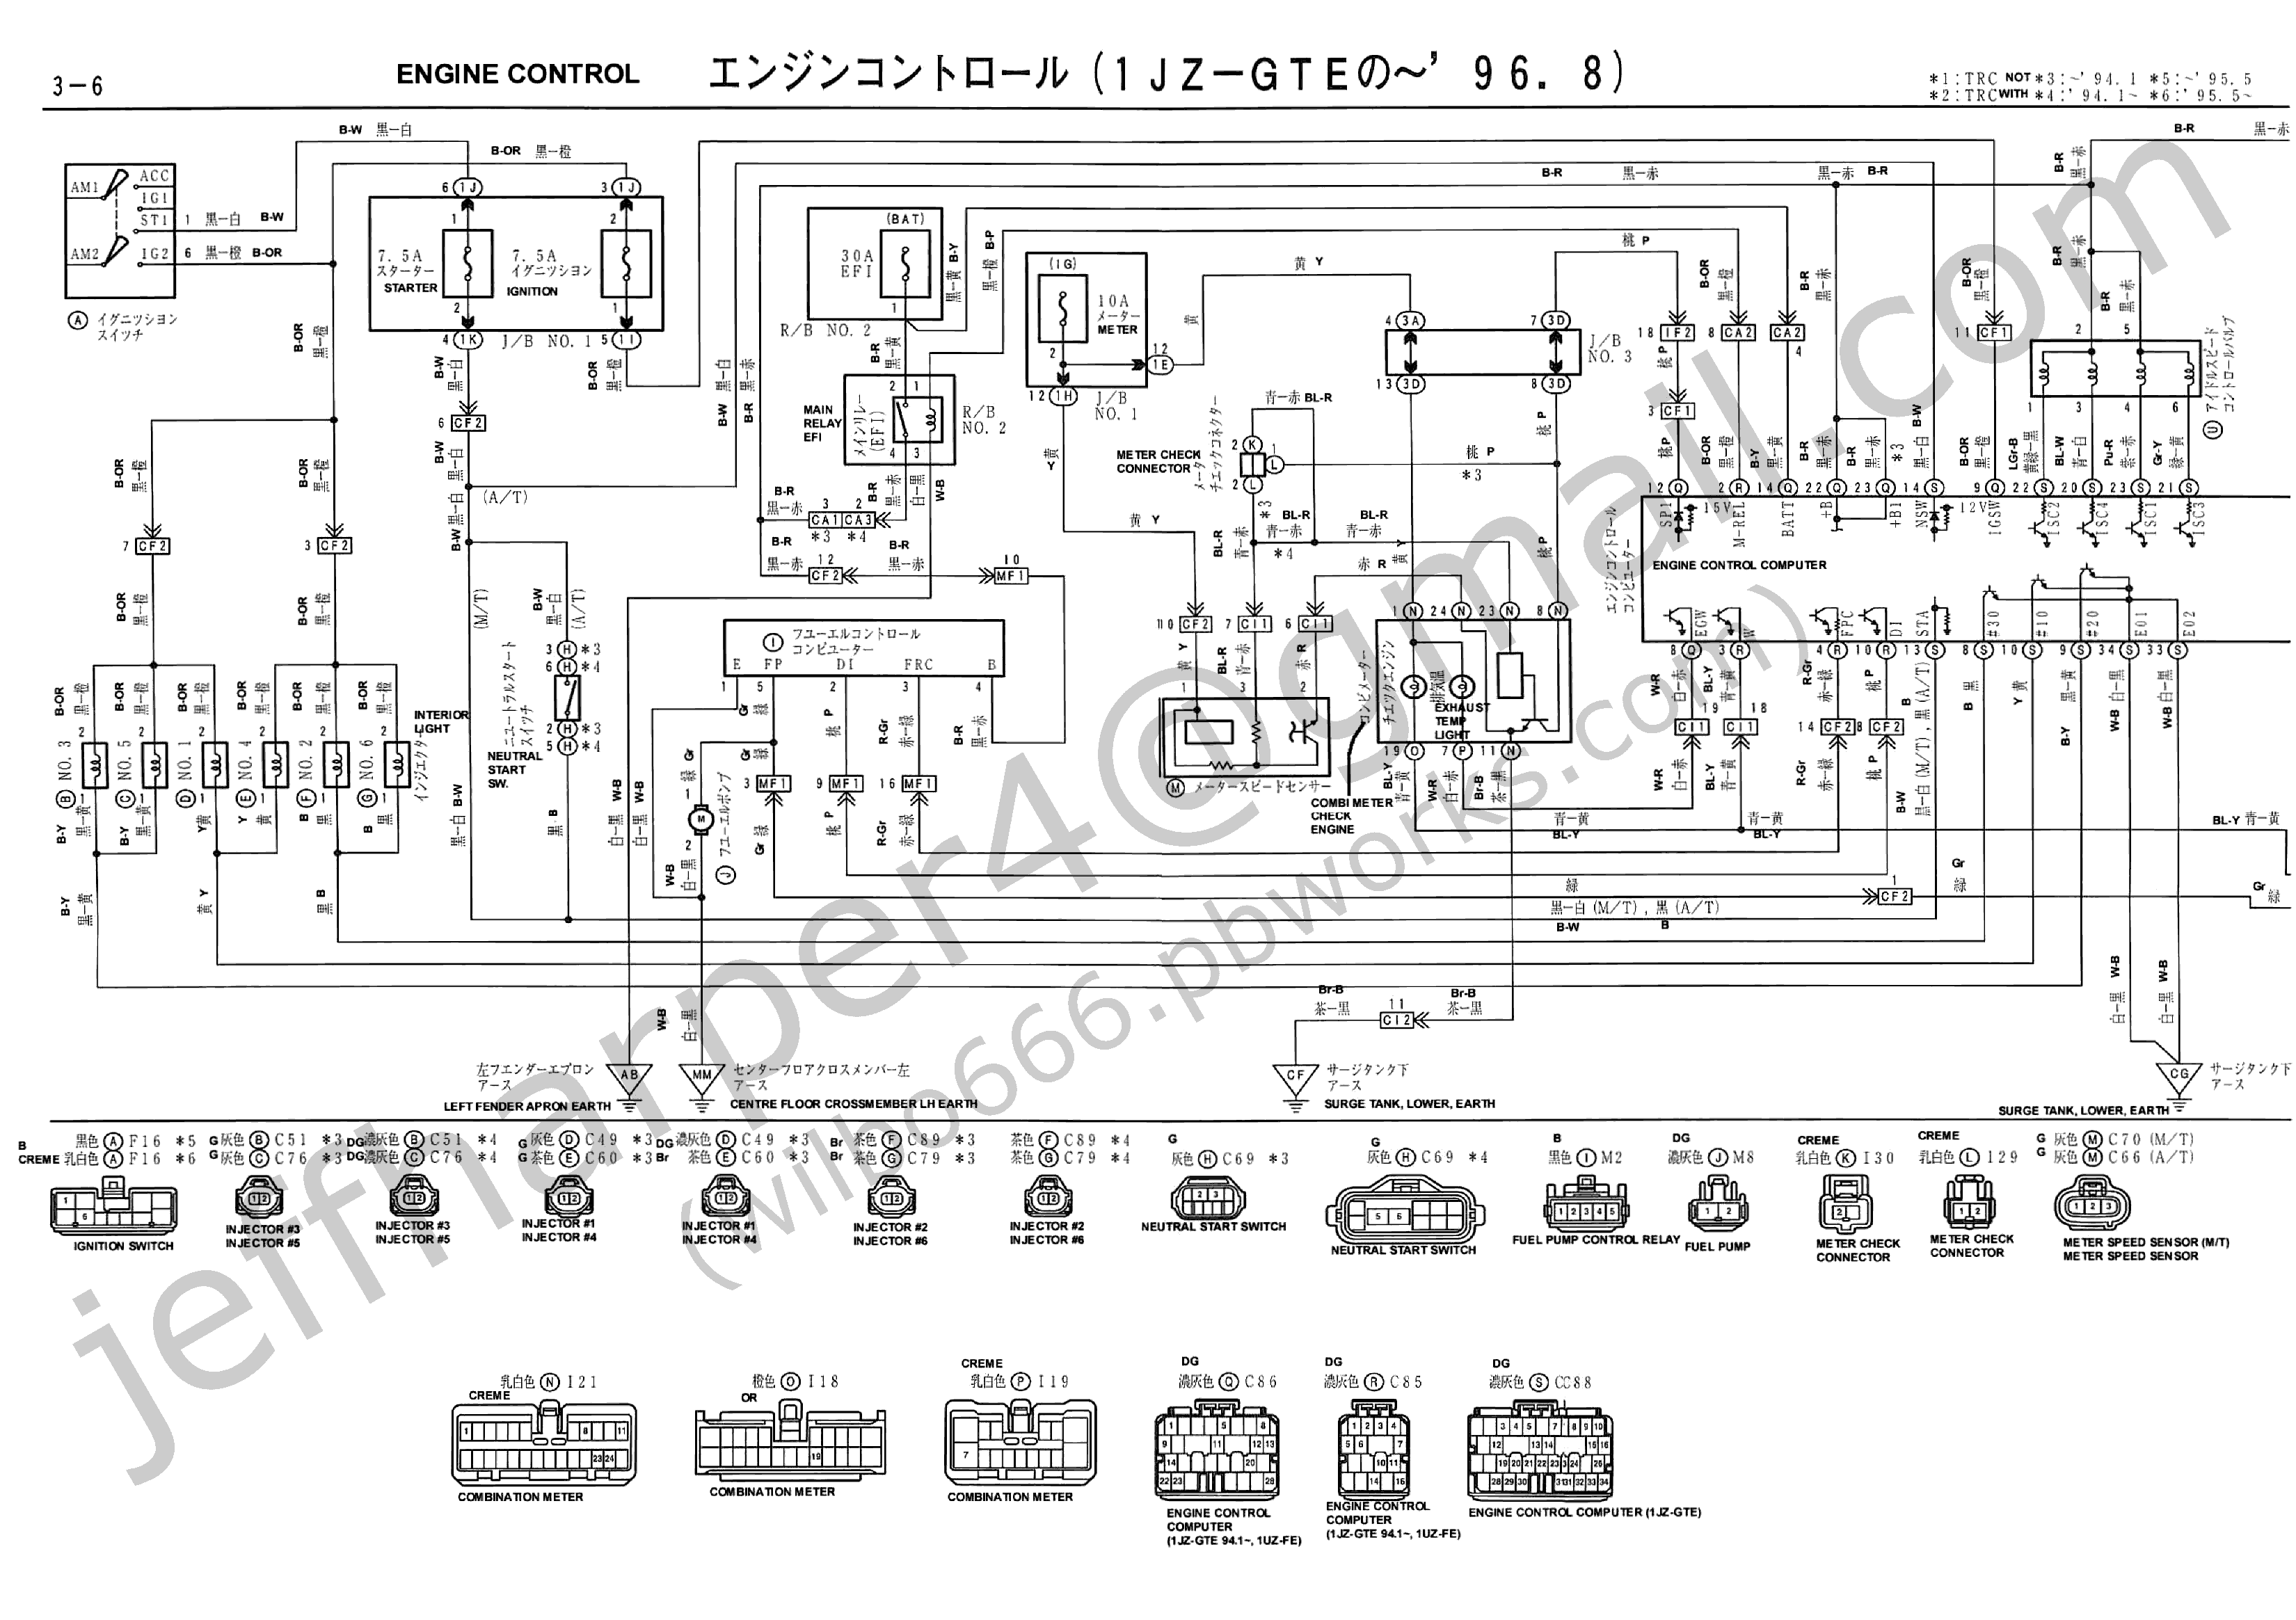 Acura Tl 2 5 2004 Specs And Images also Toyota Rav4 2011 Electrical Wiring Diagrams Ewd additionally 2014 F150 Stereo Wiring besides Wiringt2 likewise 2010 Honda Fit Fuse Box Diagram. on toyota dome light wiring diagram